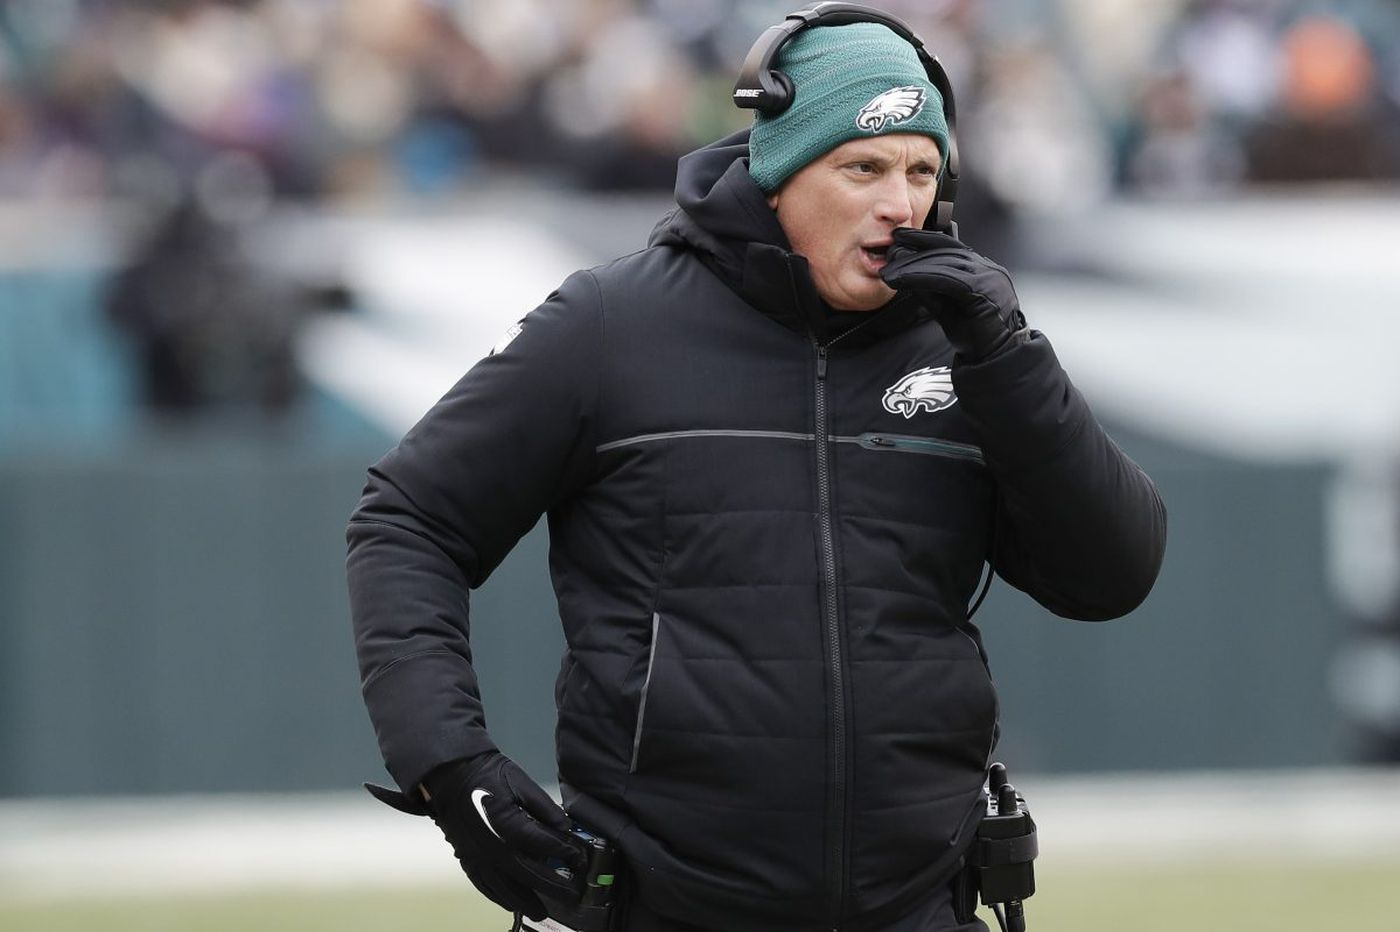 Eagles' Jim Schwartz says he's focused on Falcons, not coaching vacancies